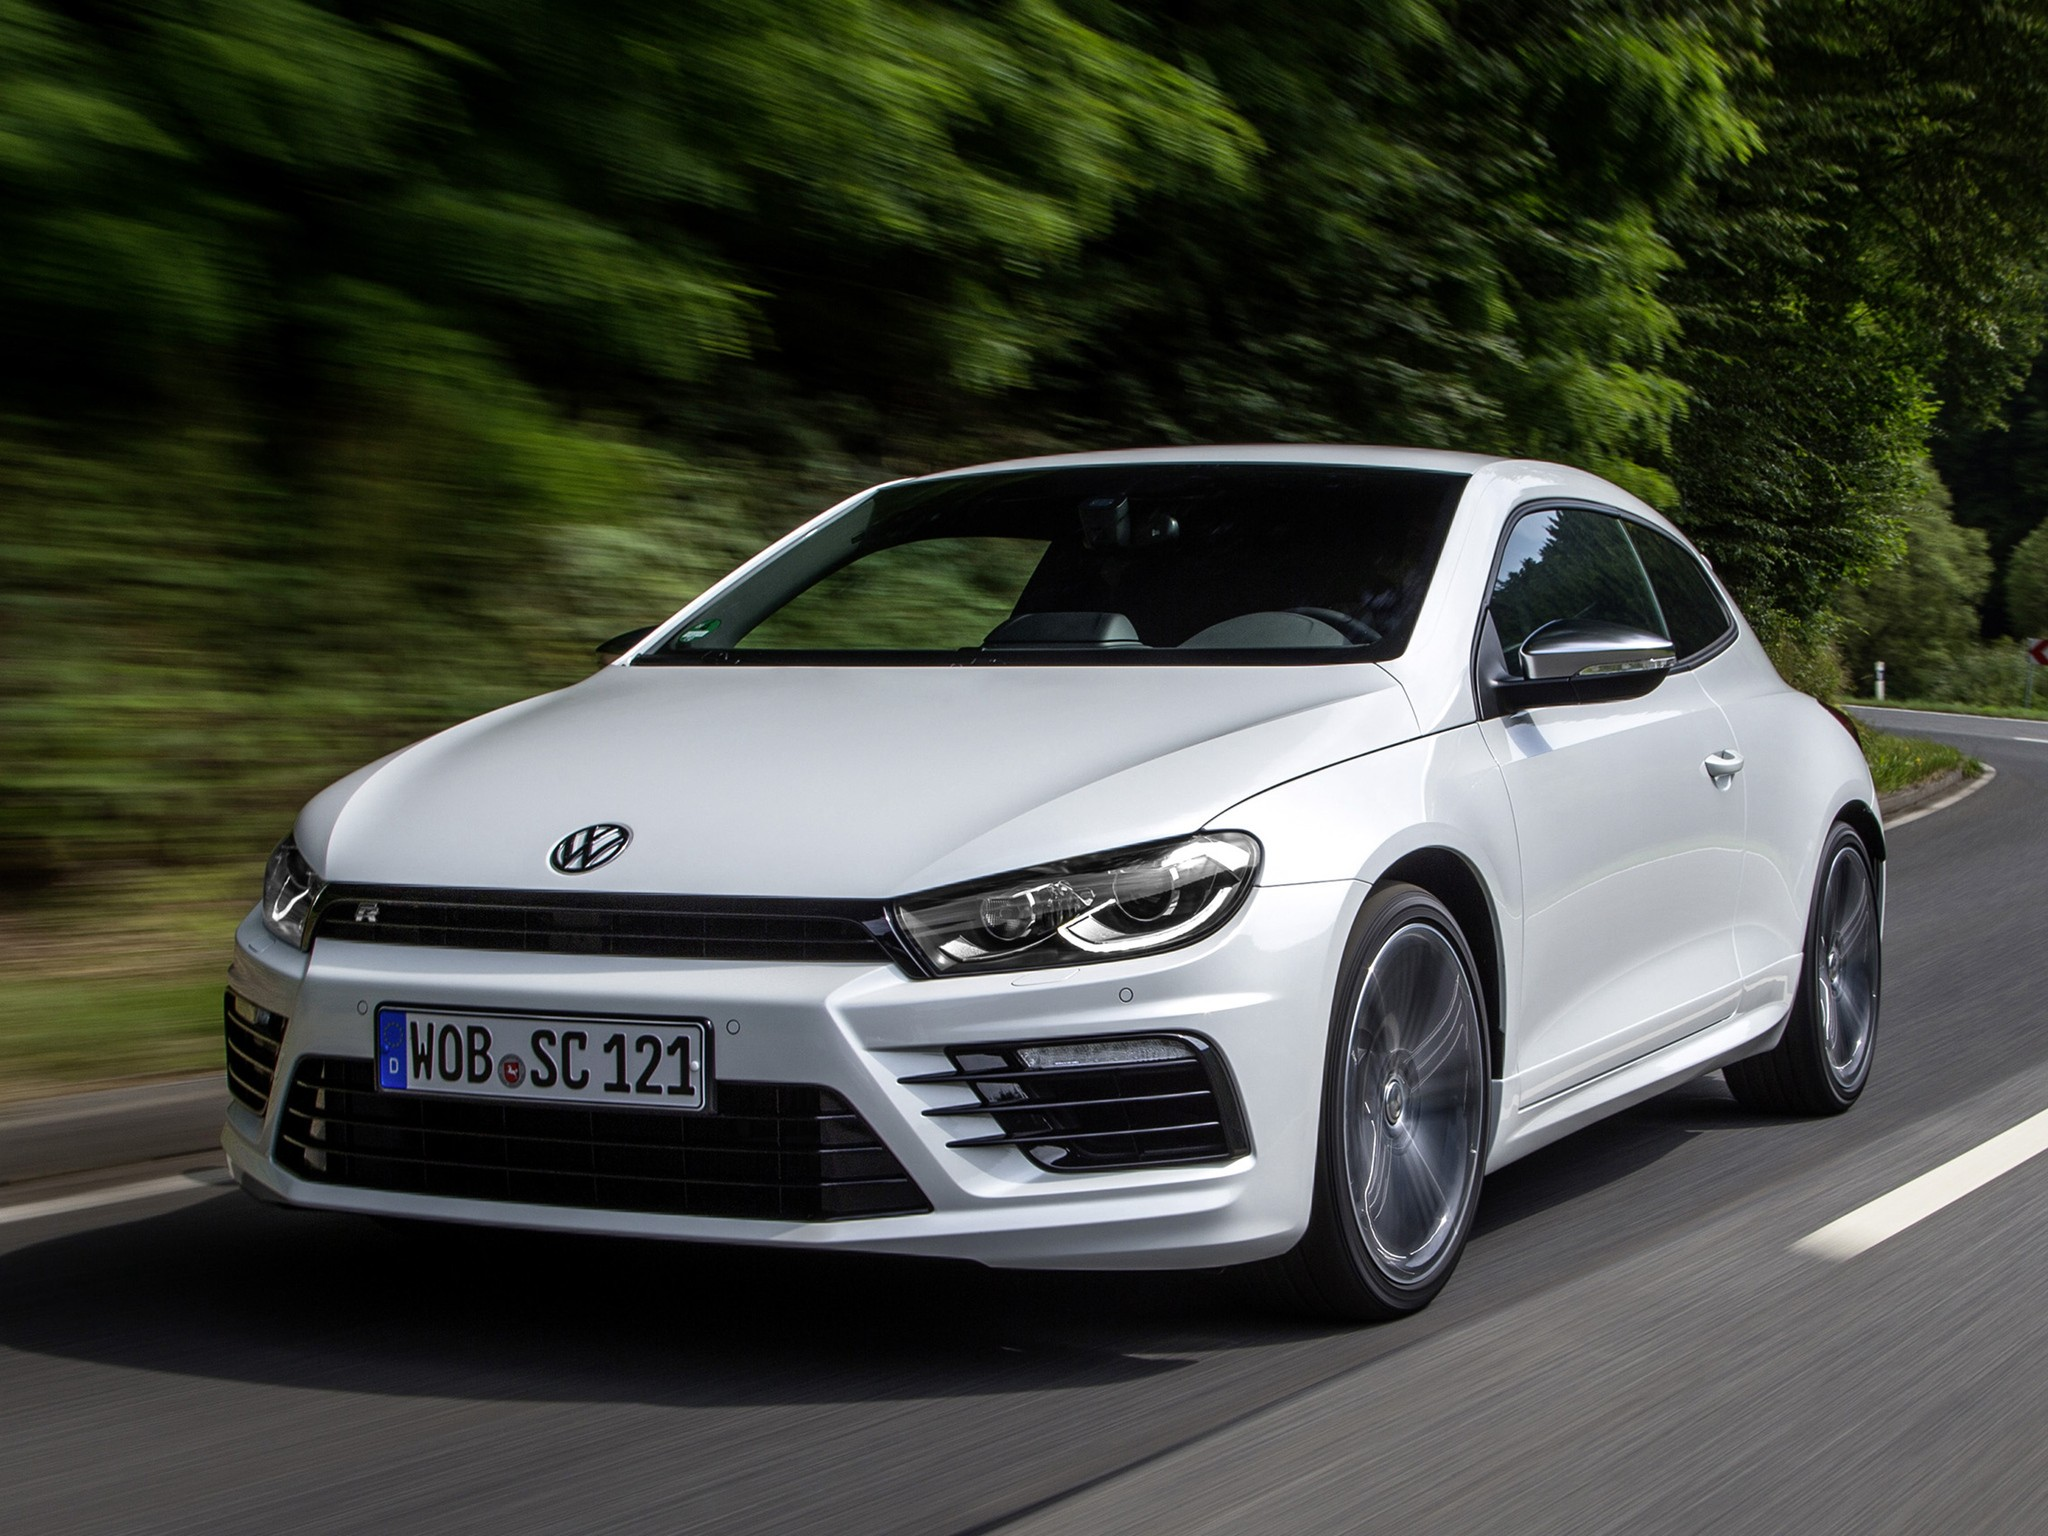 volkswagen scirocco r specs photos 2014 2015 2016 2017 2018 2019 autoevolution. Black Bedroom Furniture Sets. Home Design Ideas